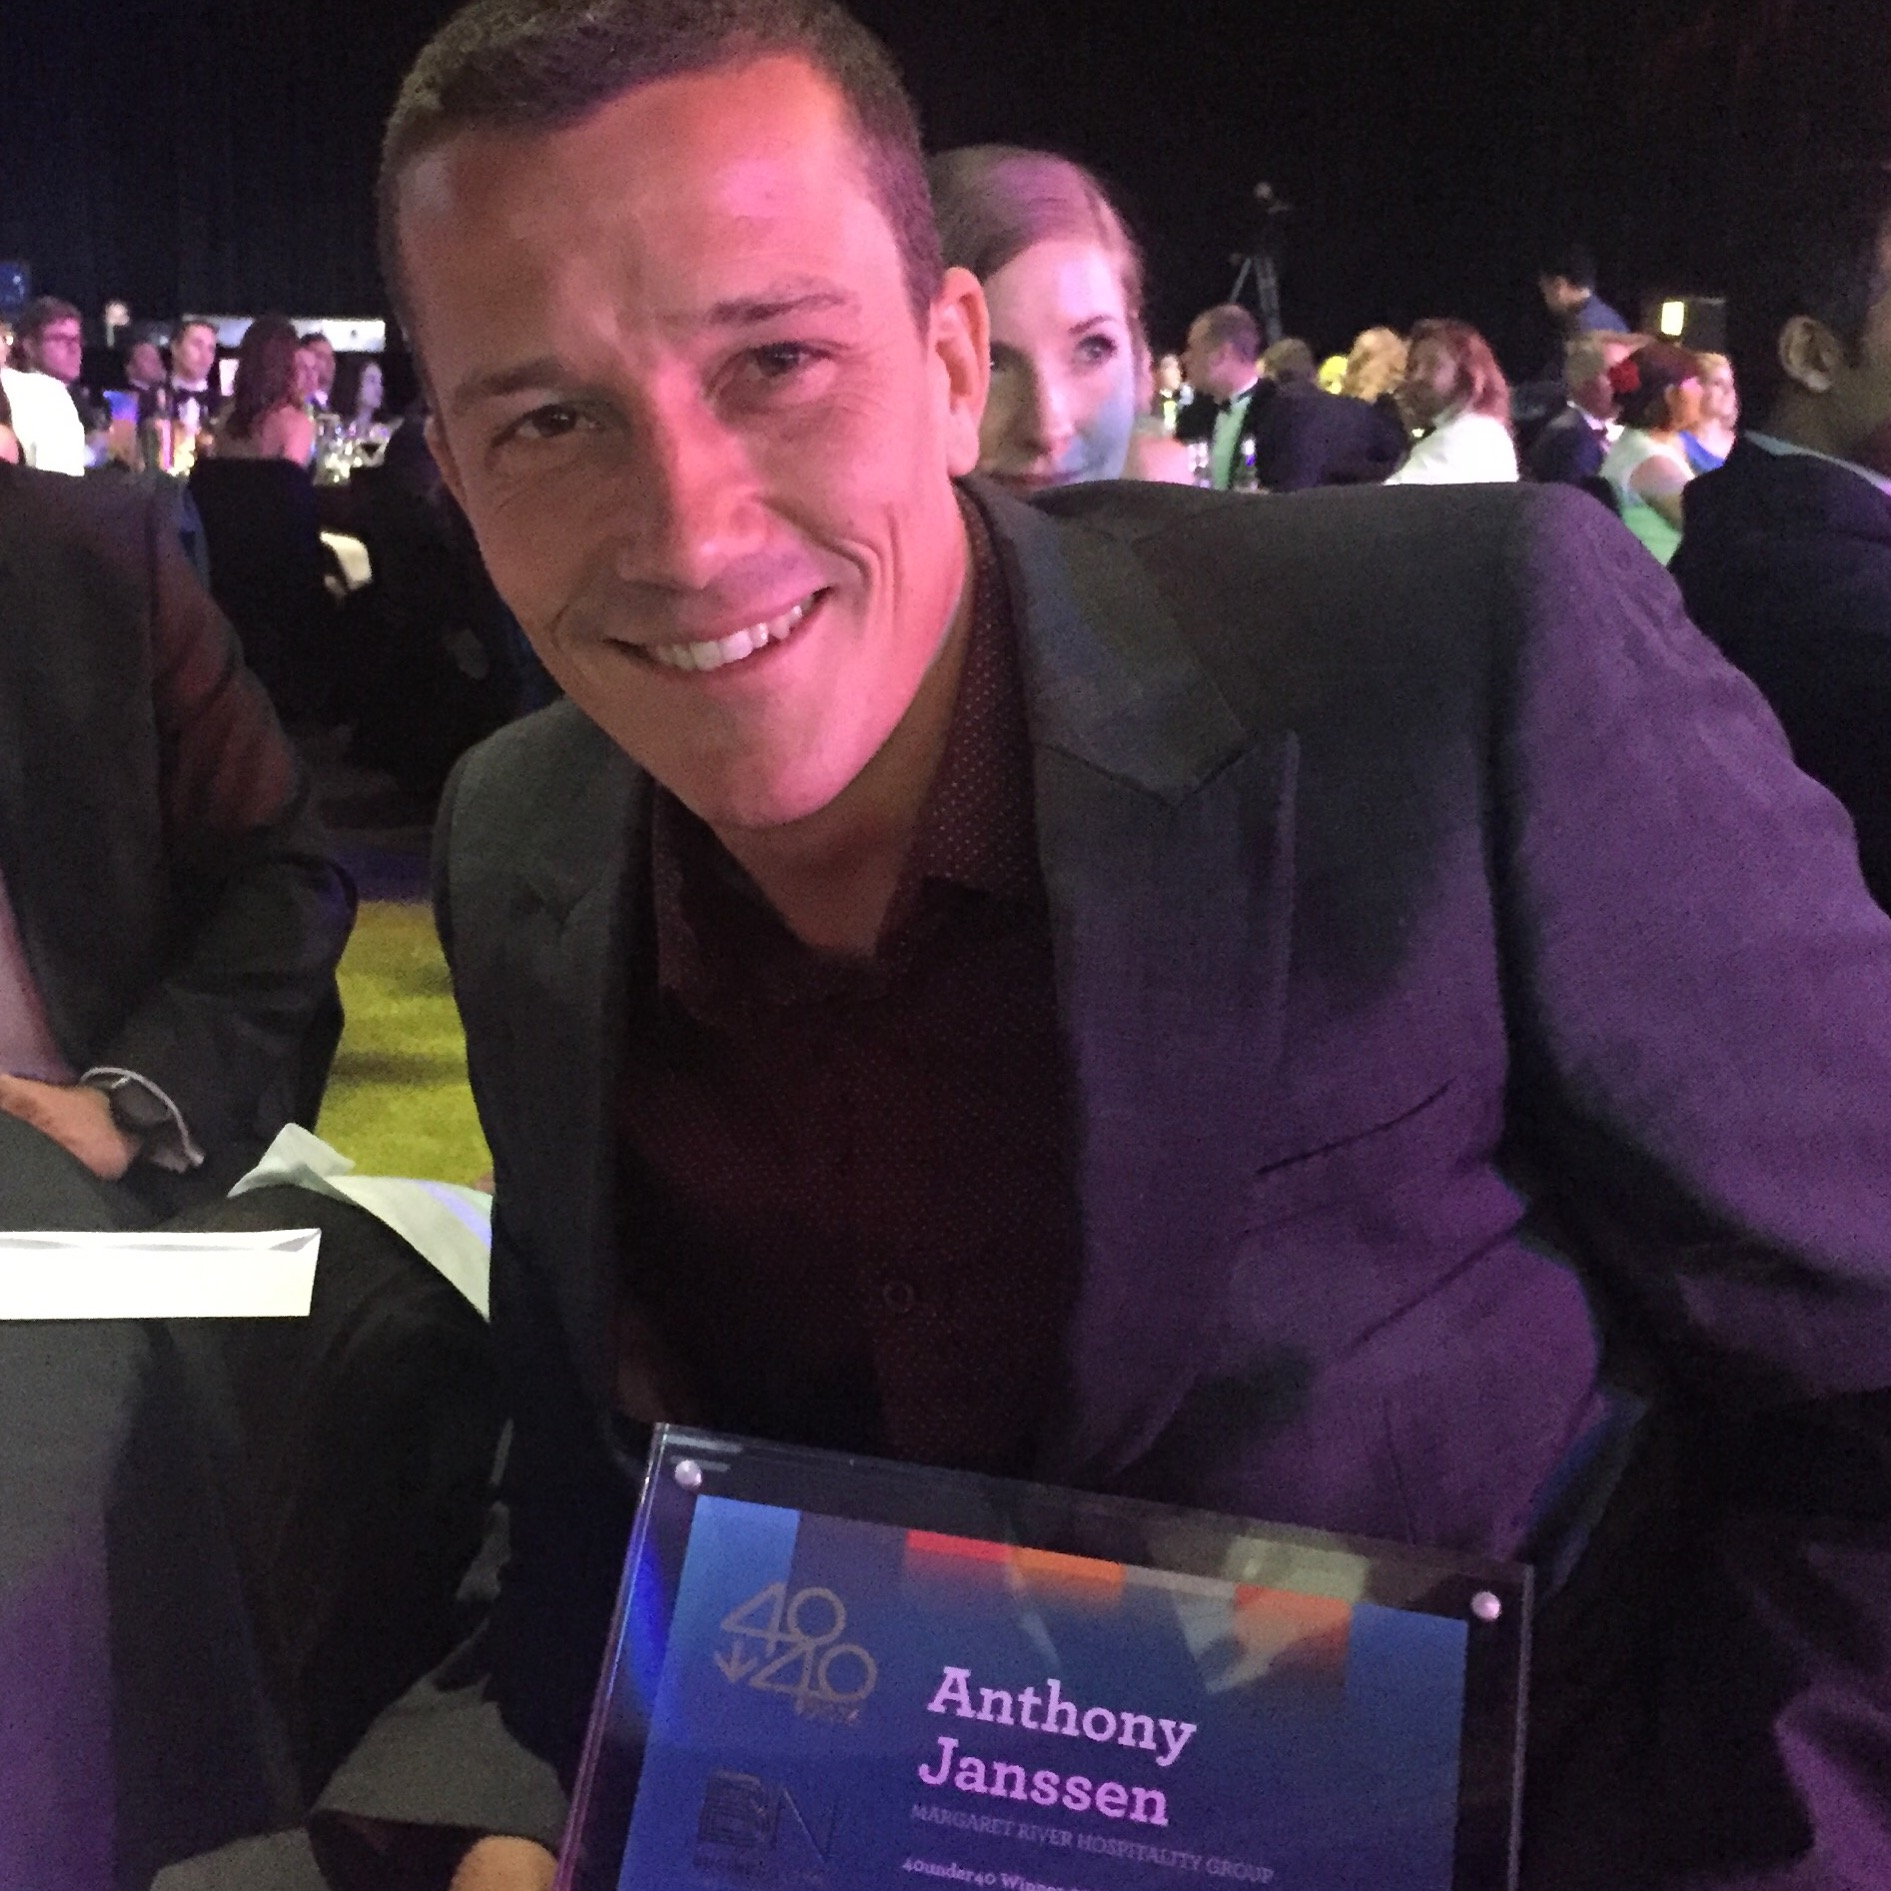 Anthony Janssen wins business award